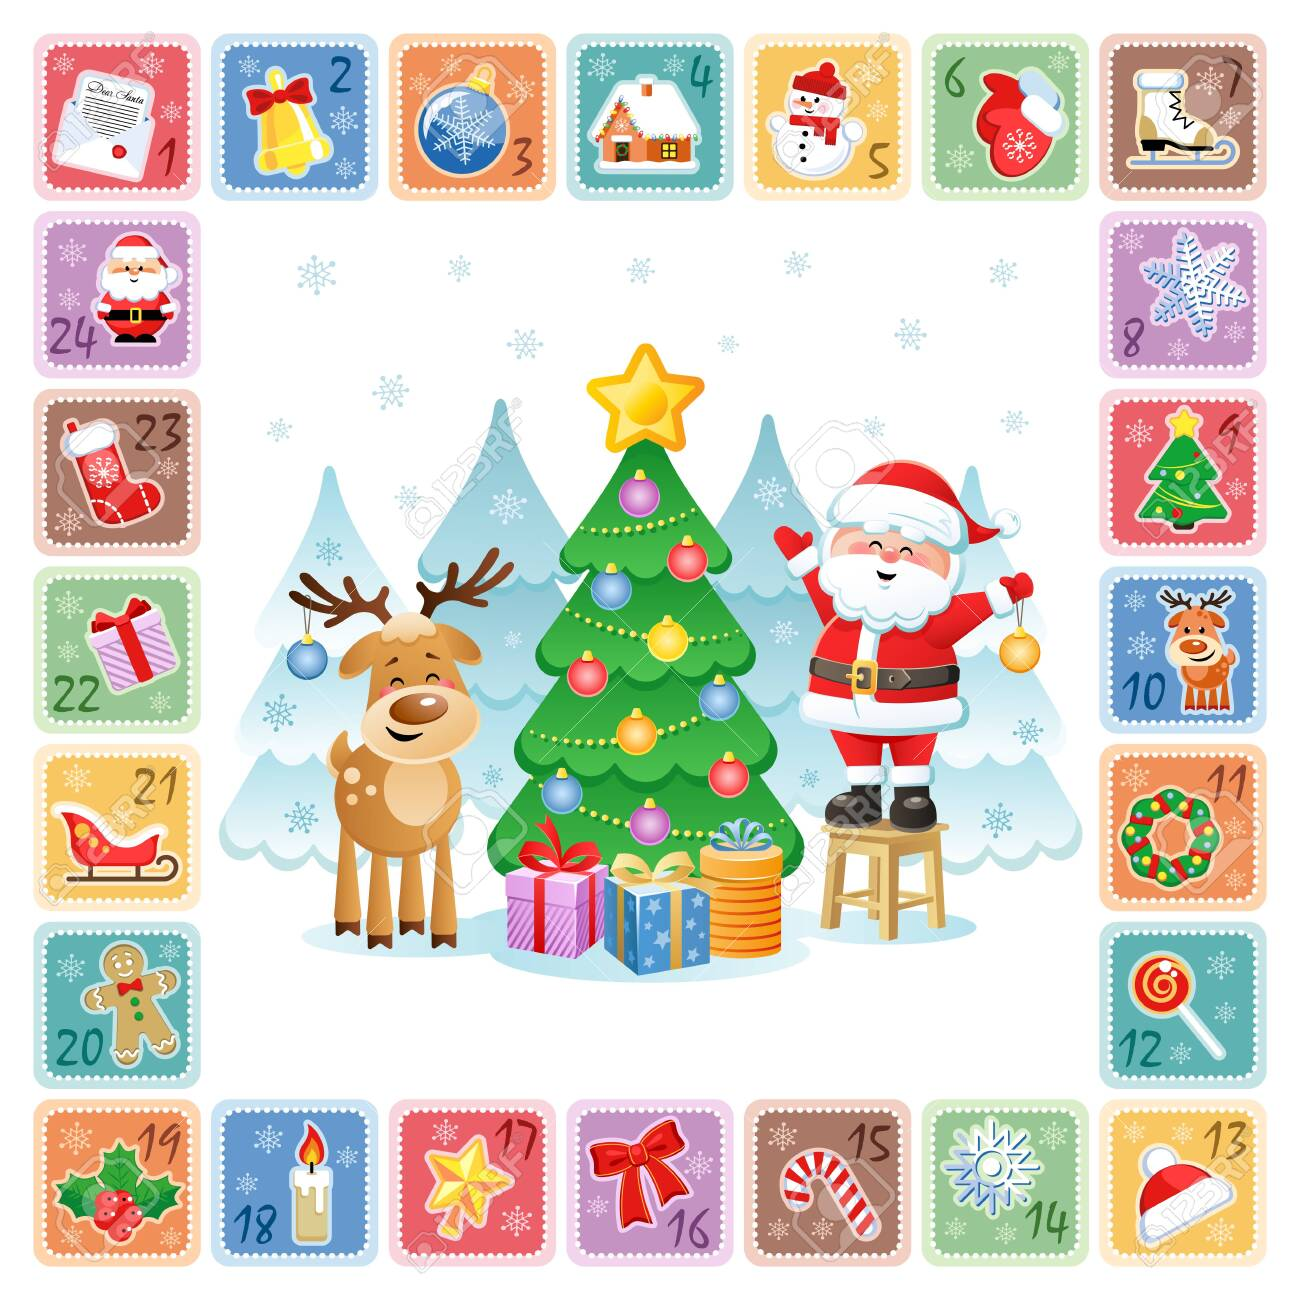 Christmas Countdown Calendar.Christmas Countdown Advent Calendar With Christmas Decorative